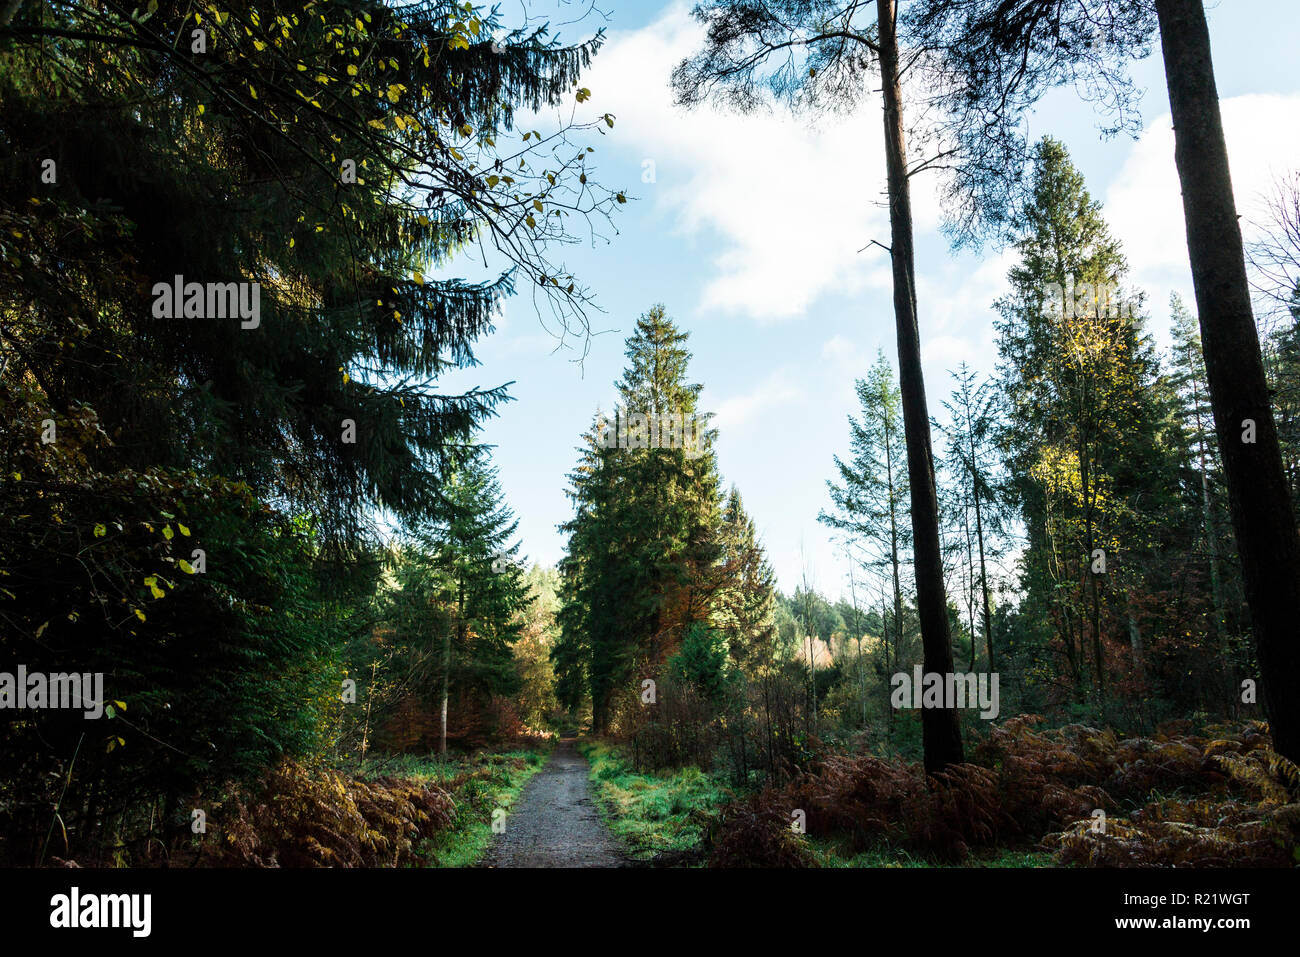 A path in mixed coniferous and deciduous woodland in autumn - Stock Image